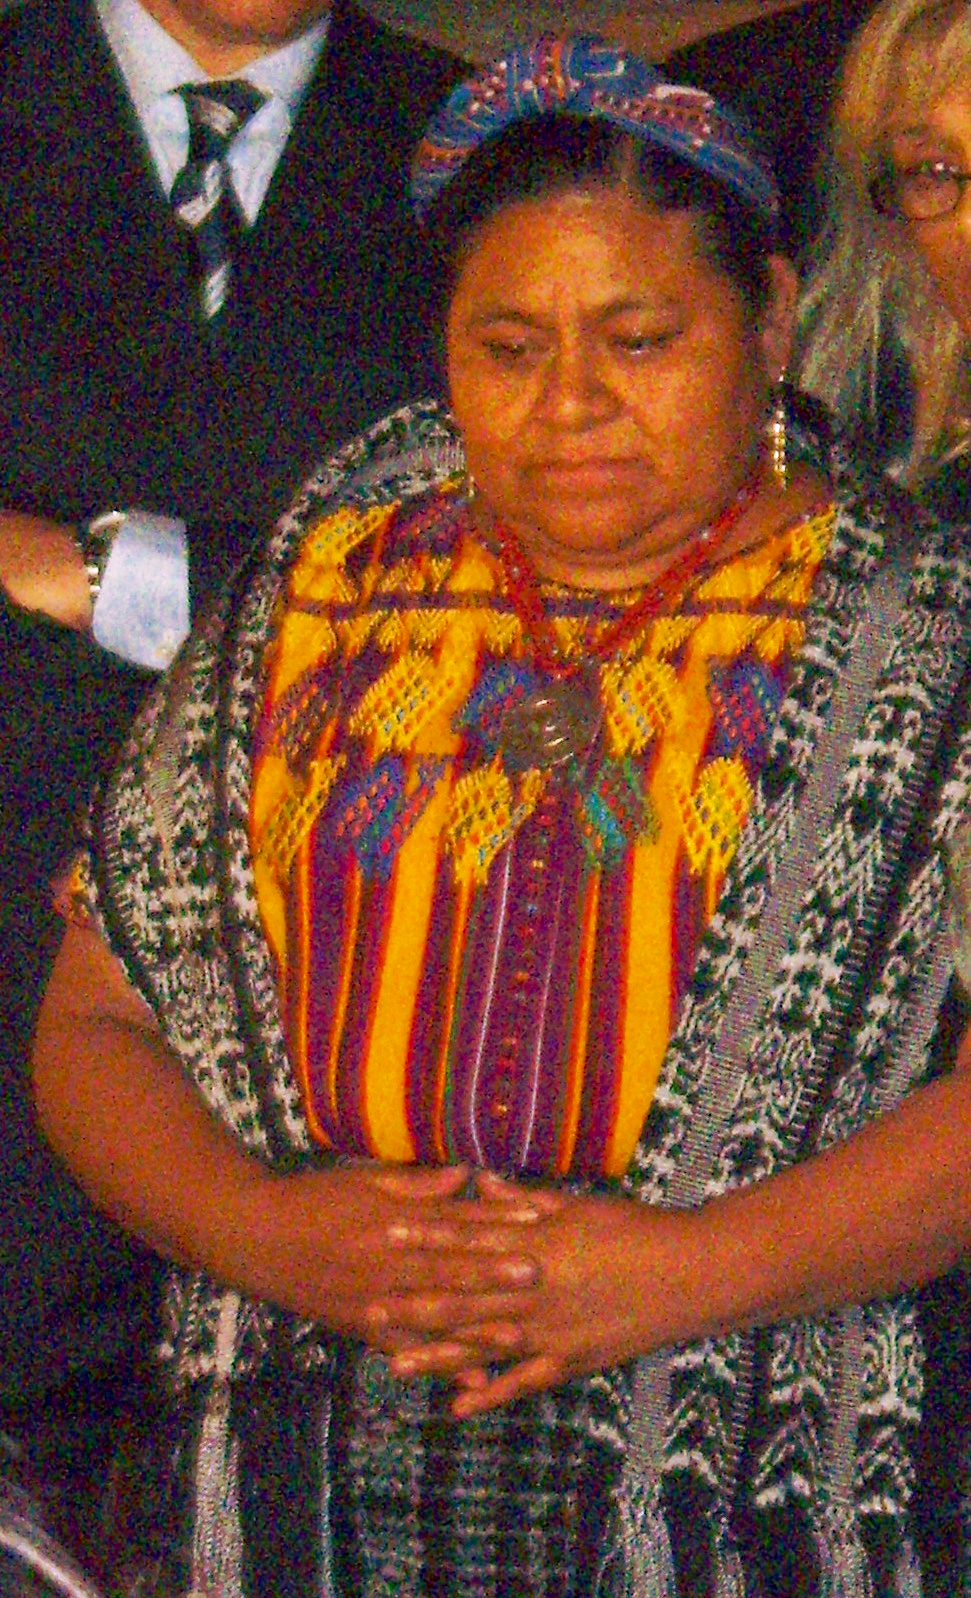 rigoberta menchu essays Resources for teachers and students on rigoberta menchú prepare: rigoberta menchú tum won the nobel peace prize in 1992 her biography and the text of her nobel lecture can be found on the nobel website.